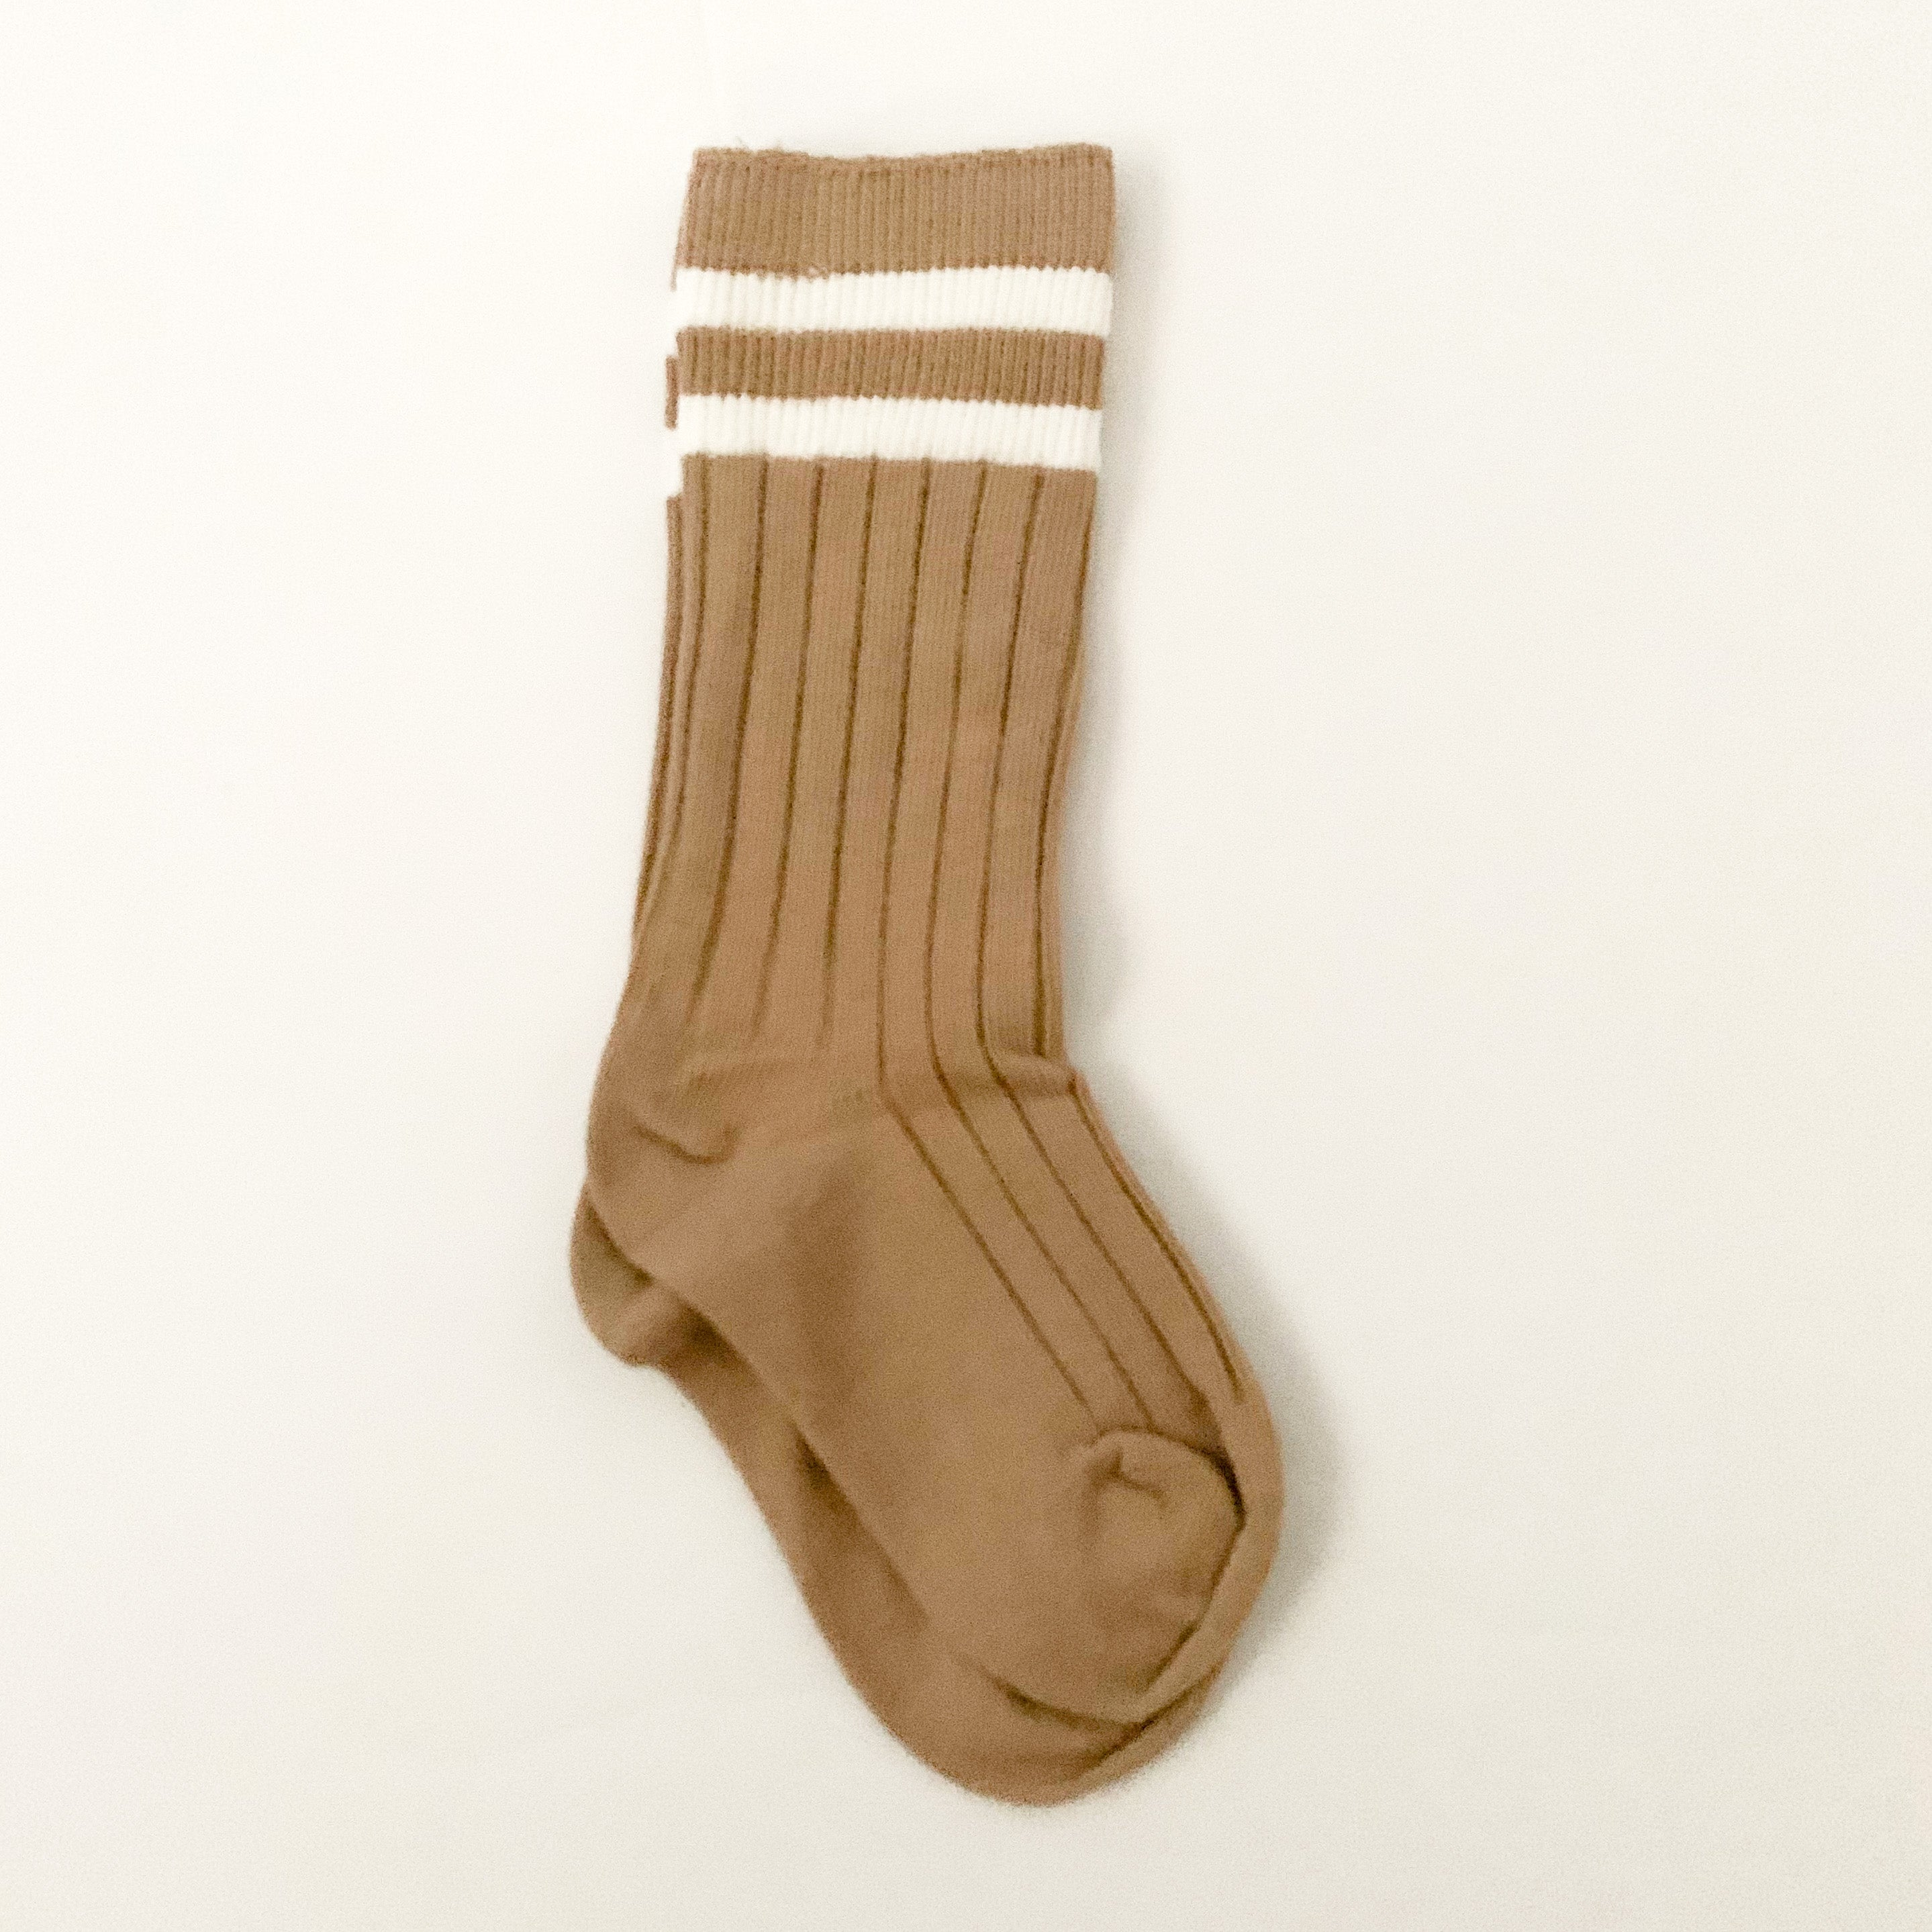 Retro Babe Socks (SINGLE PAIR)